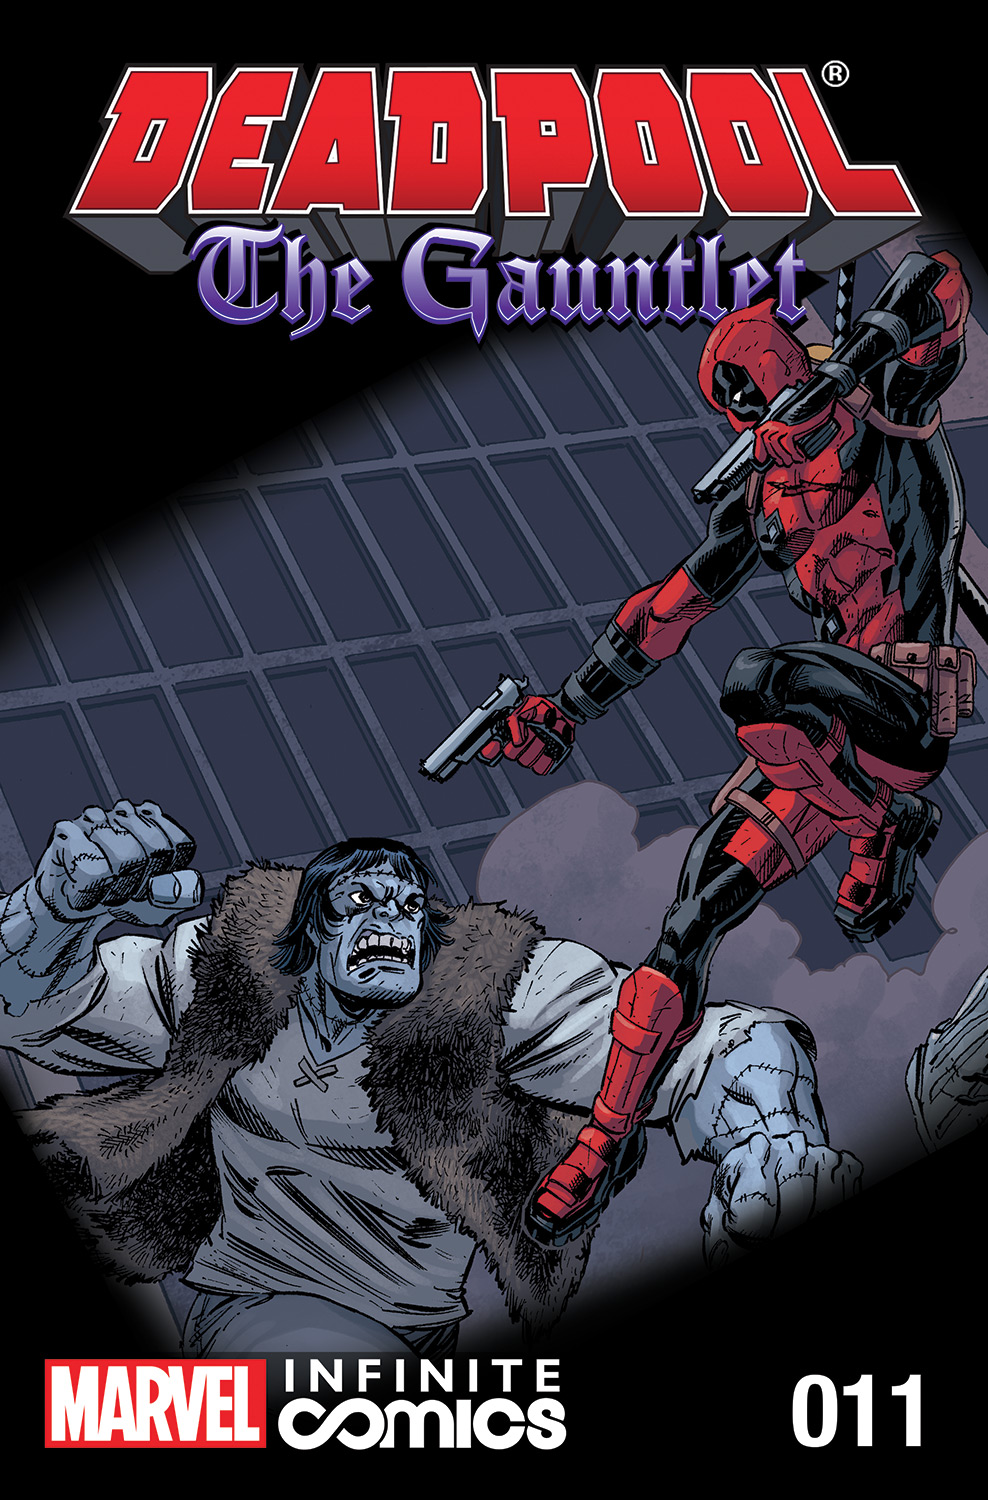 Deadpool: The Gauntlet Infinite Comic Vol 1 11